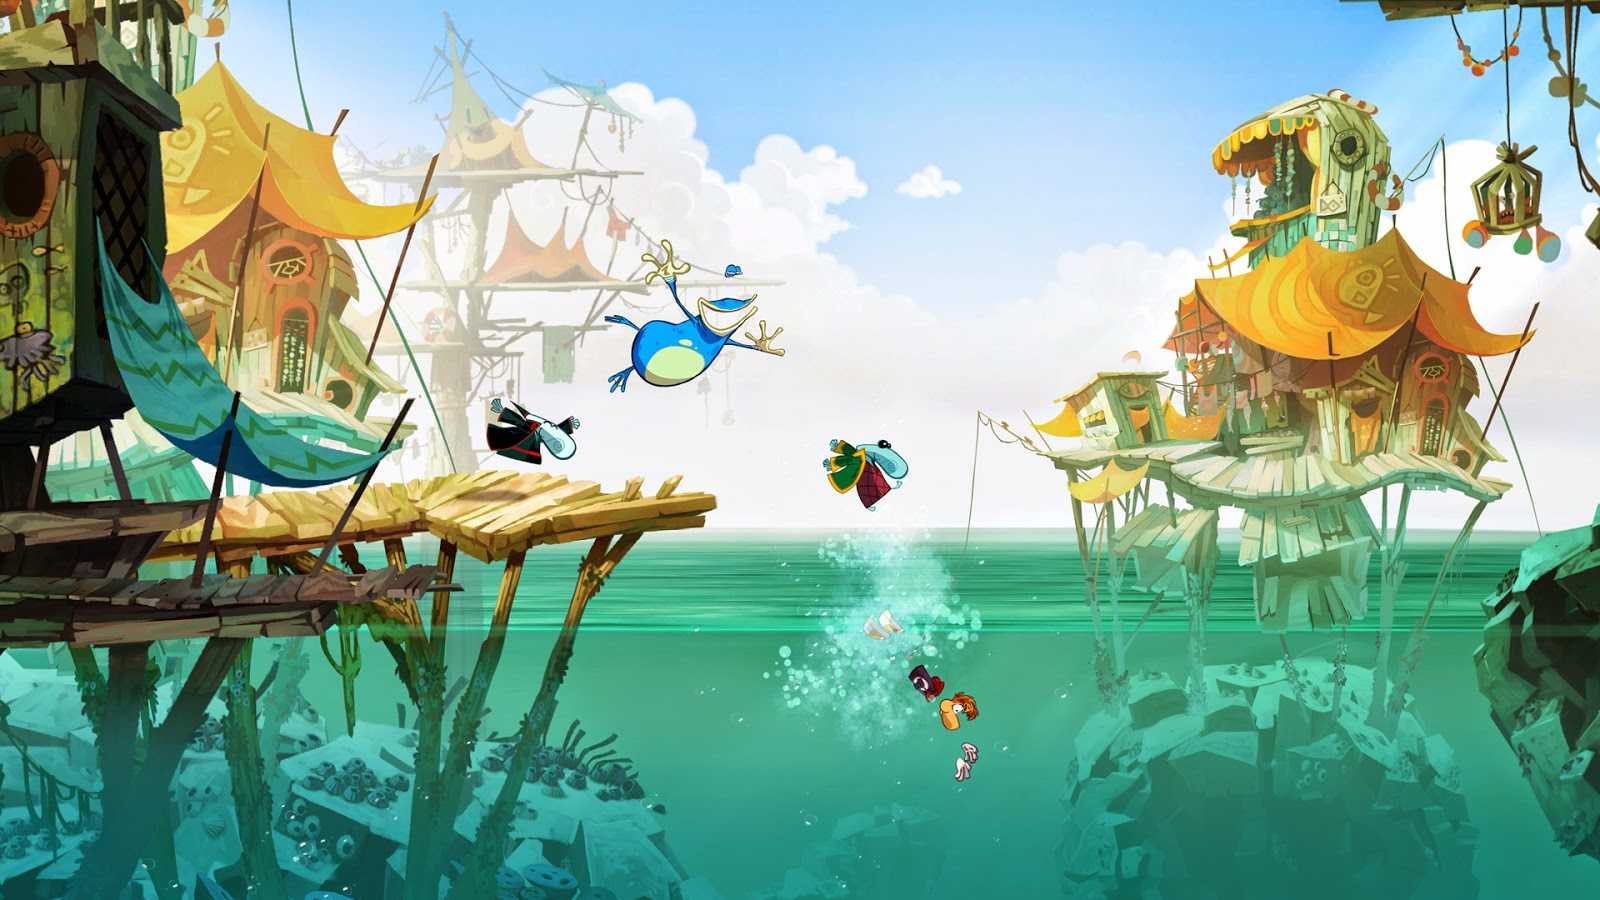 Rayman origins screenshot of port